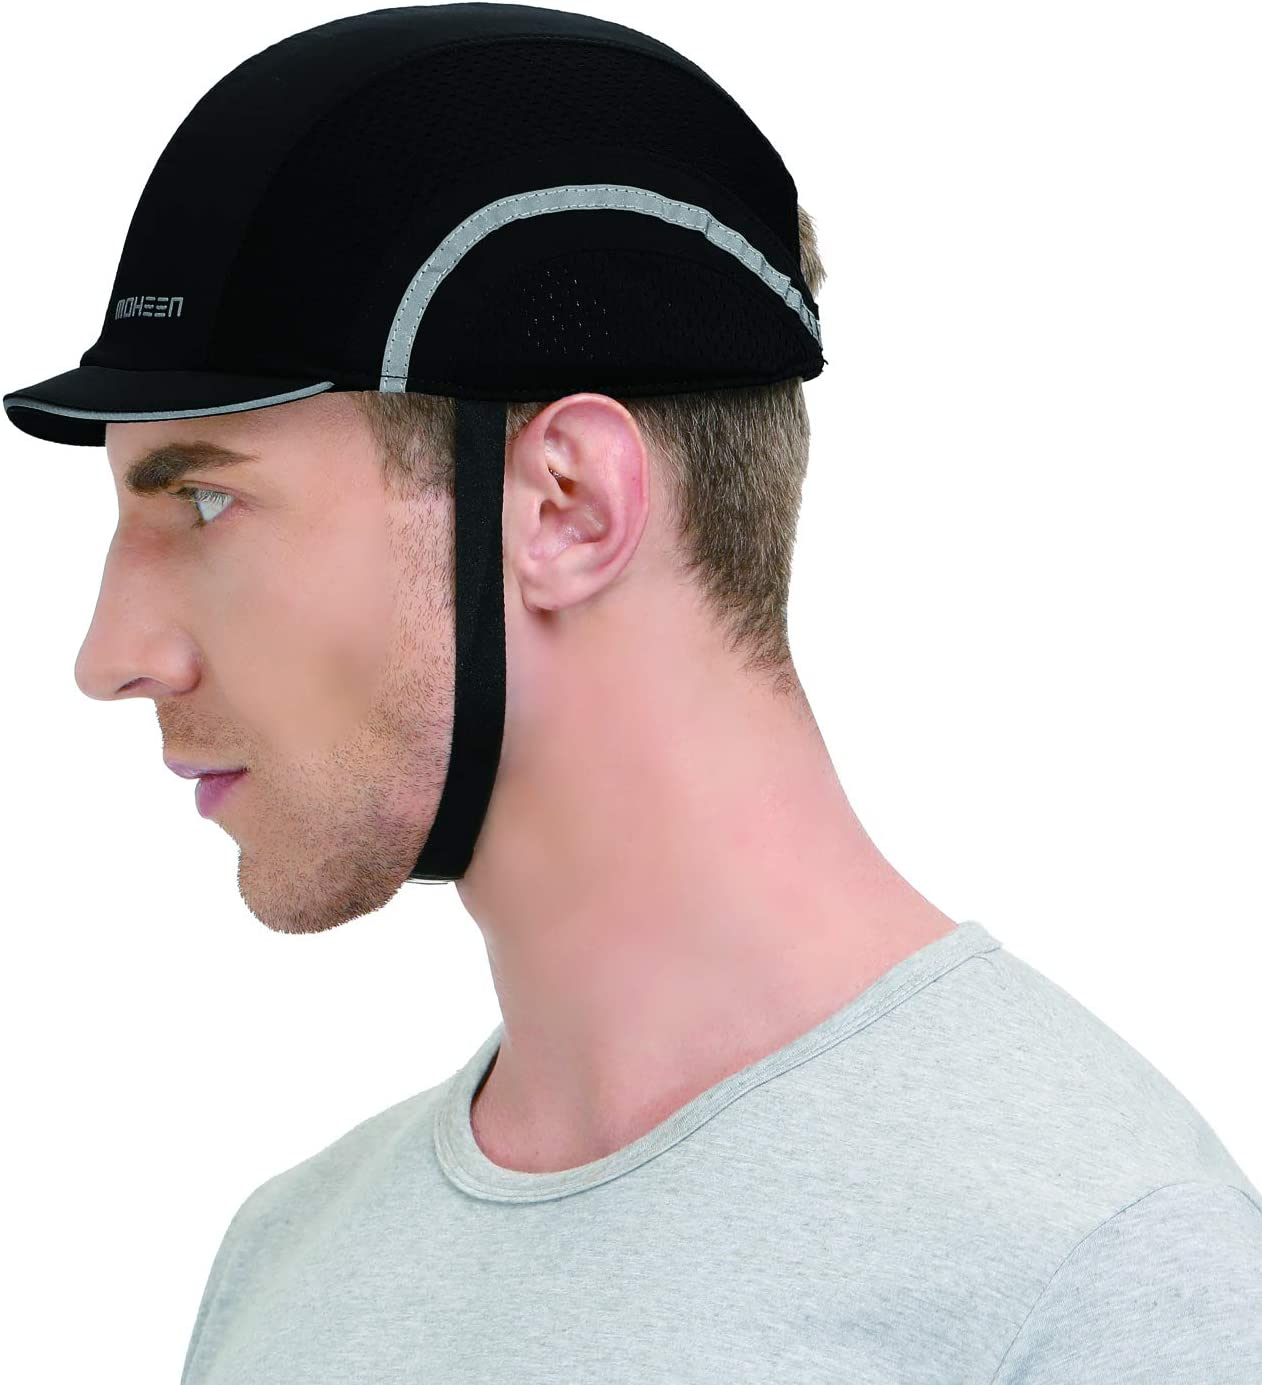 Black,Micro Brim Safety Bump Cap Lightweight and Breathable Hard Hat Head Protection Cap